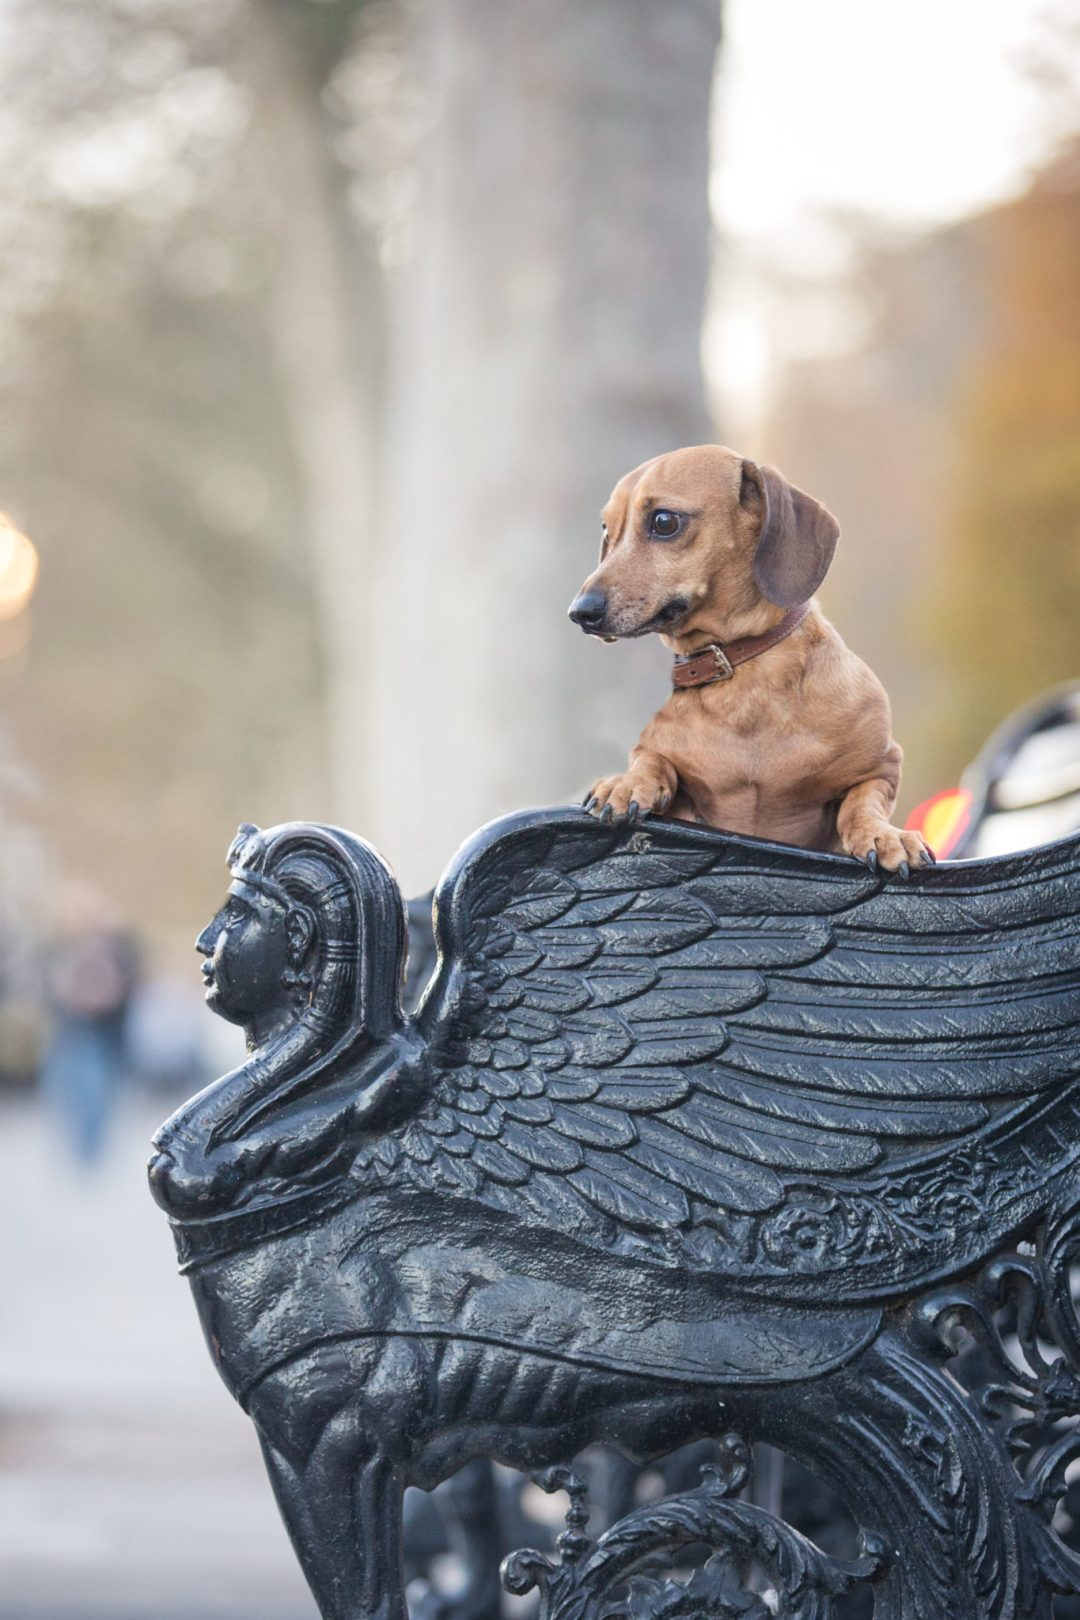 ted-london-dog-photography-5